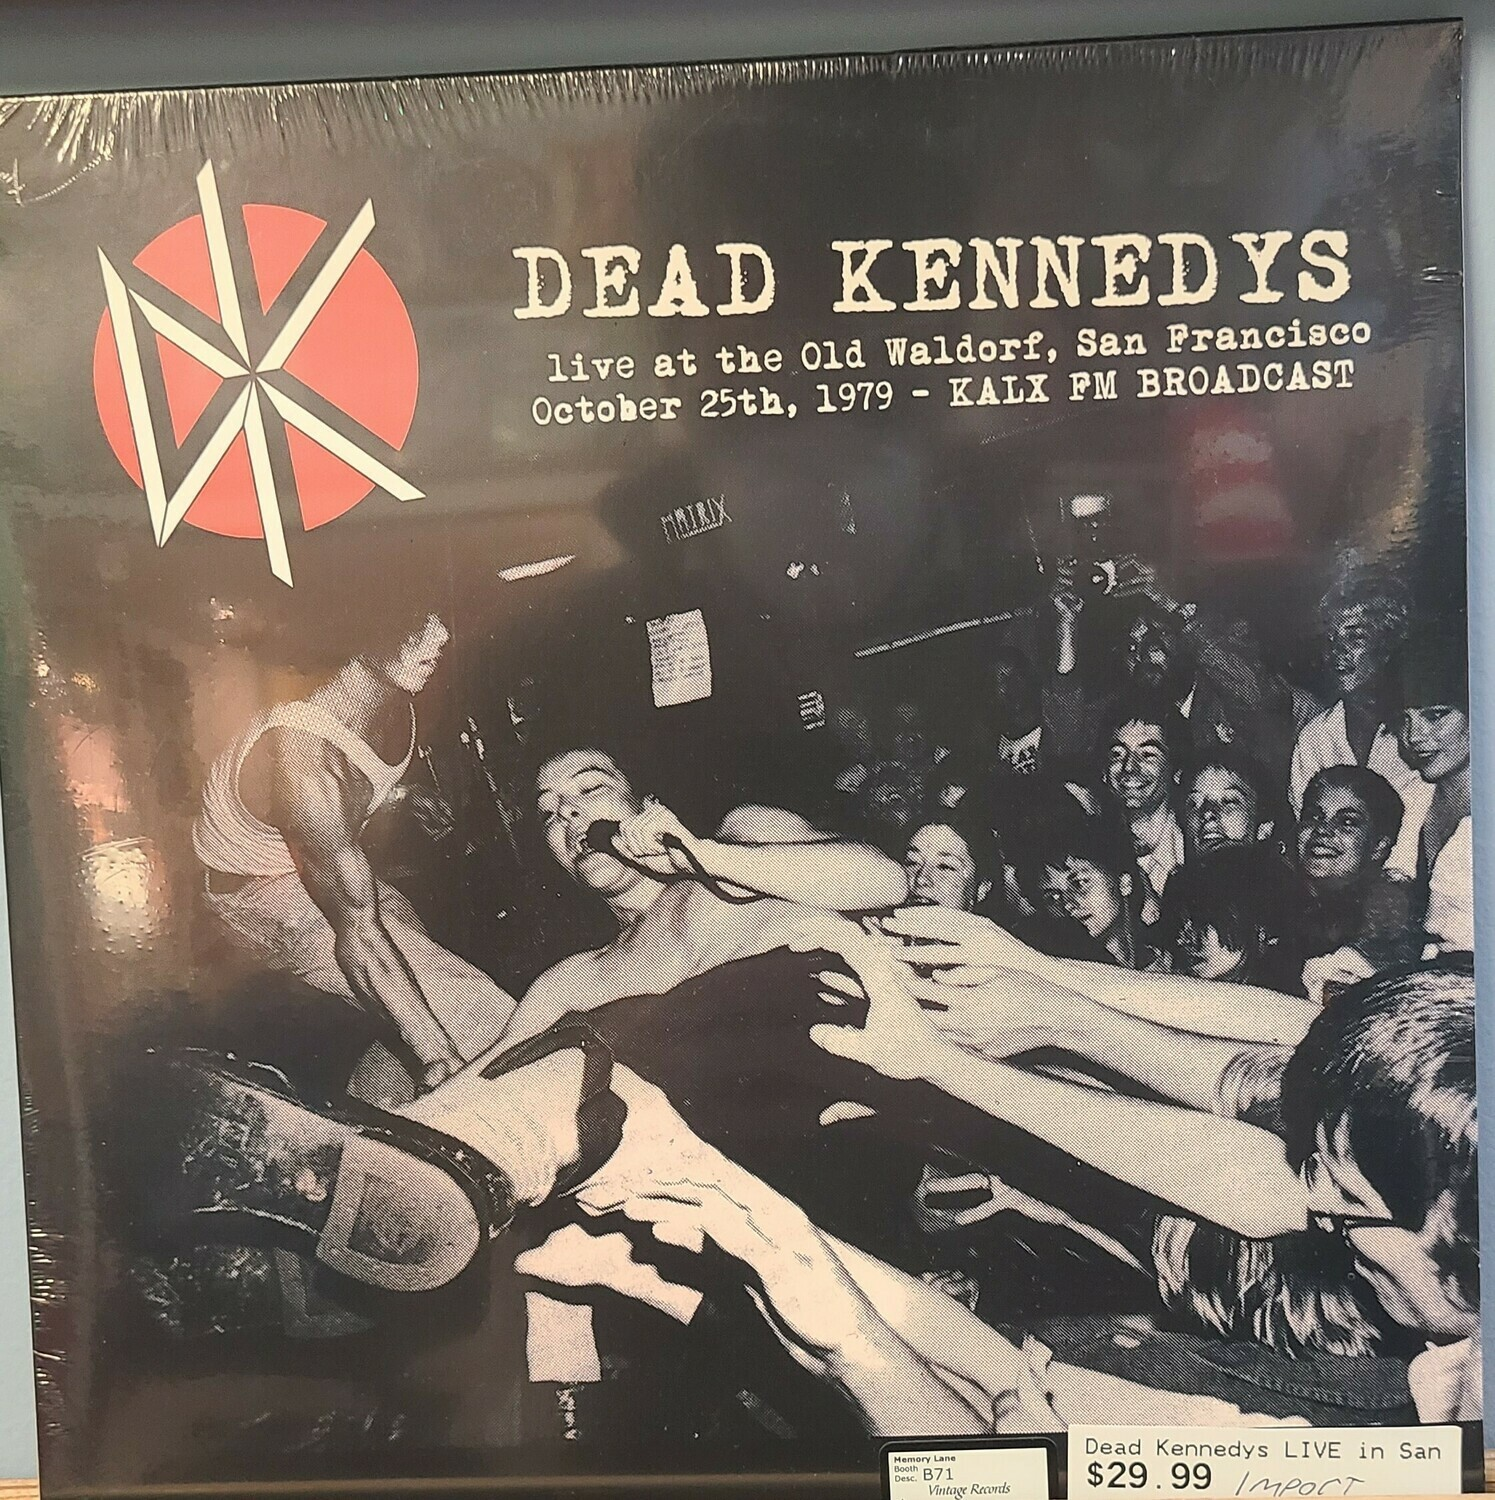 Dead Kennedys - LP - Live at the Old Waldorf